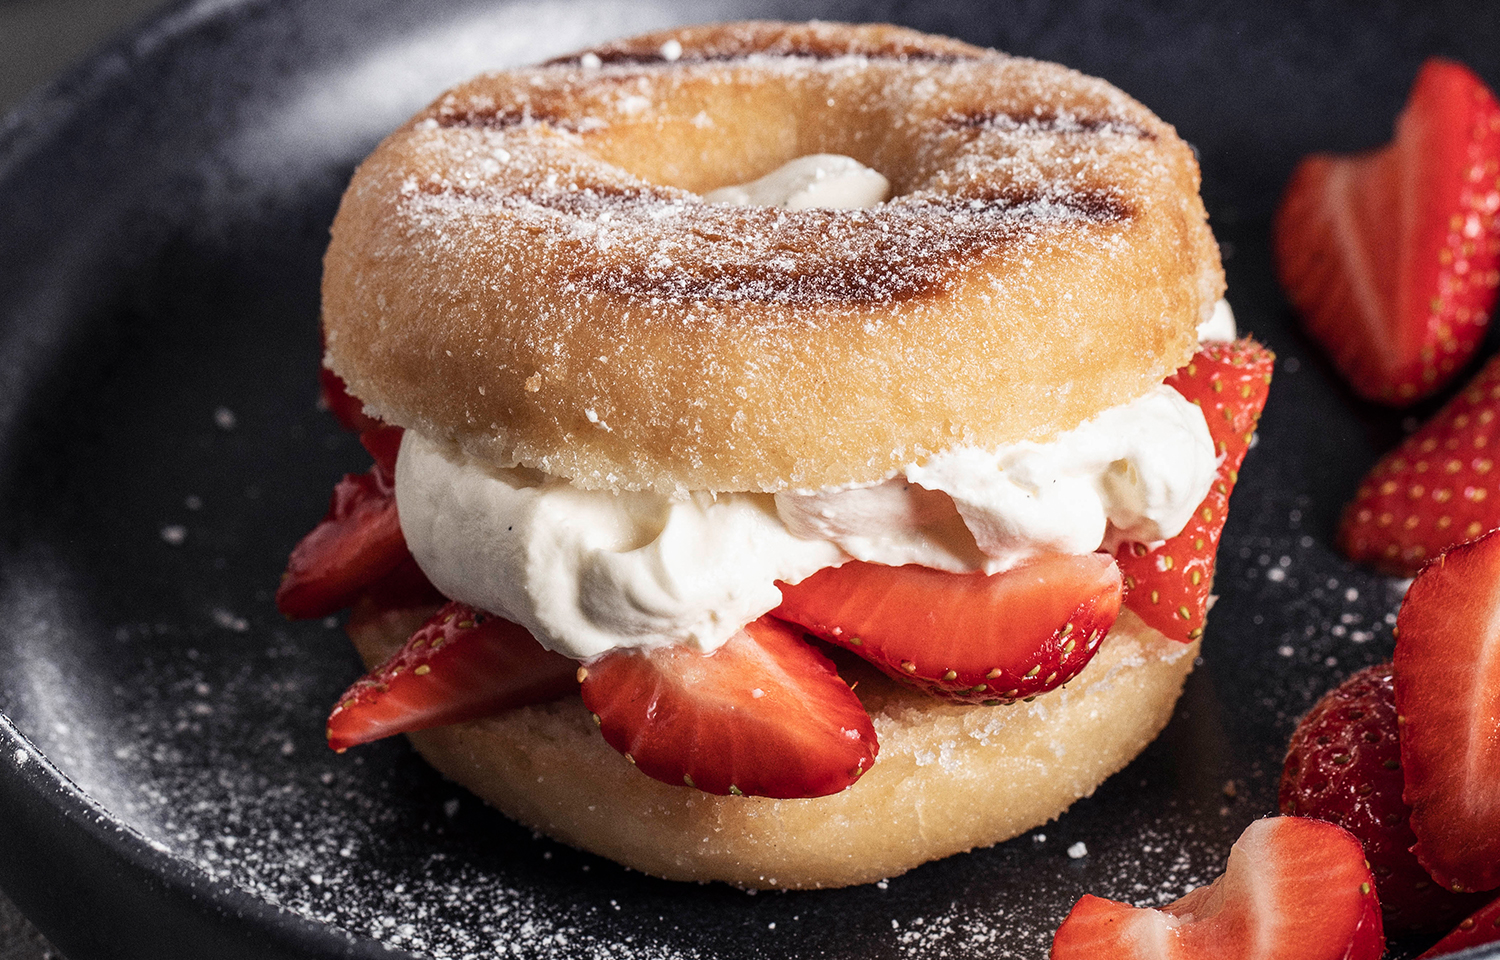 Grilled American doughnuts